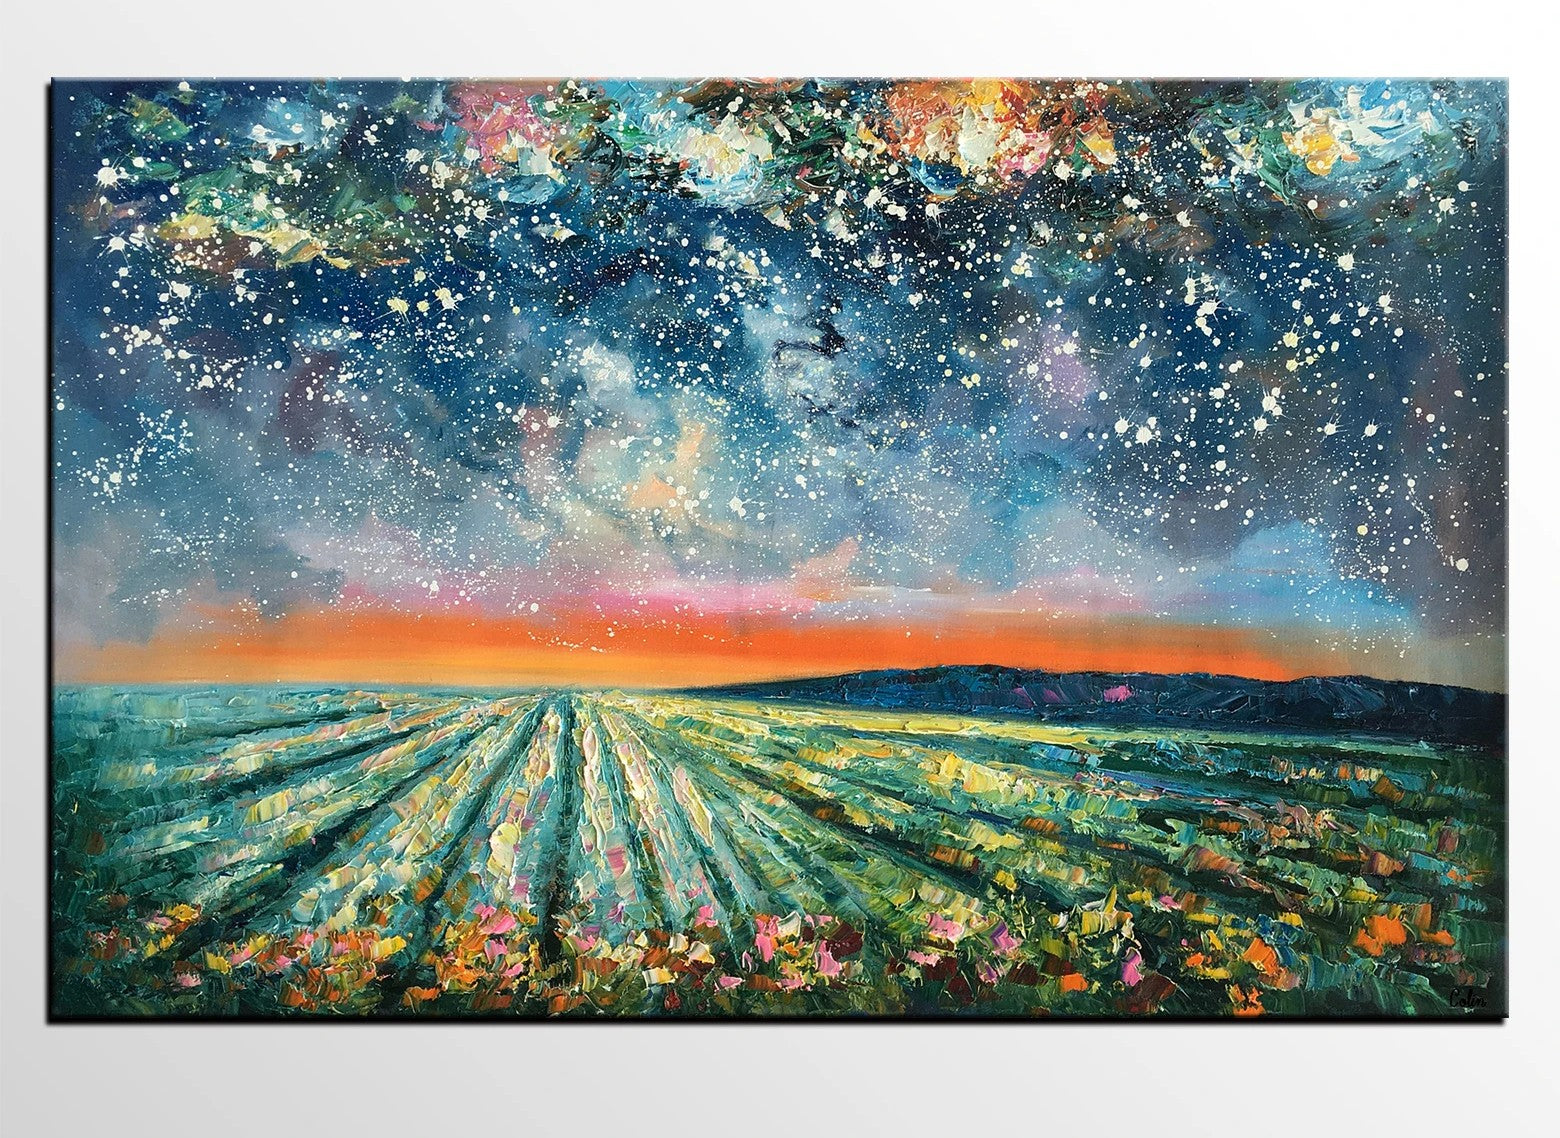 Abstract Landscape Painting, Starry Night Painting, Original Landscape Paintings, Heavy Texture Painting, Landscape Paintings for Living Room